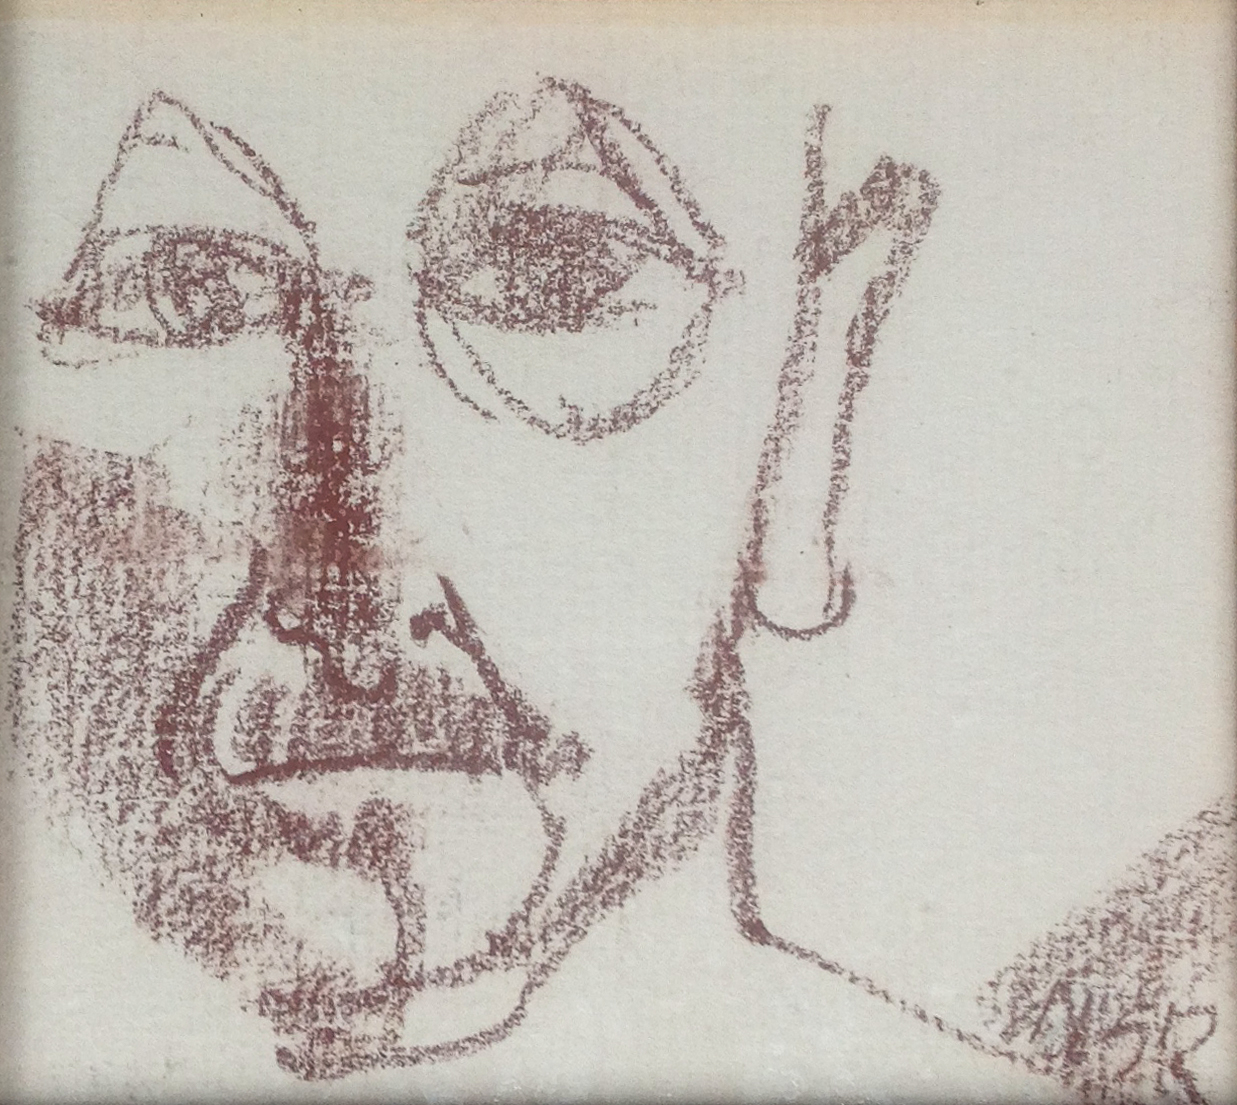 """Man Face - 4.25"""" x 3.75"""" - Collection of Bill Reybold"""